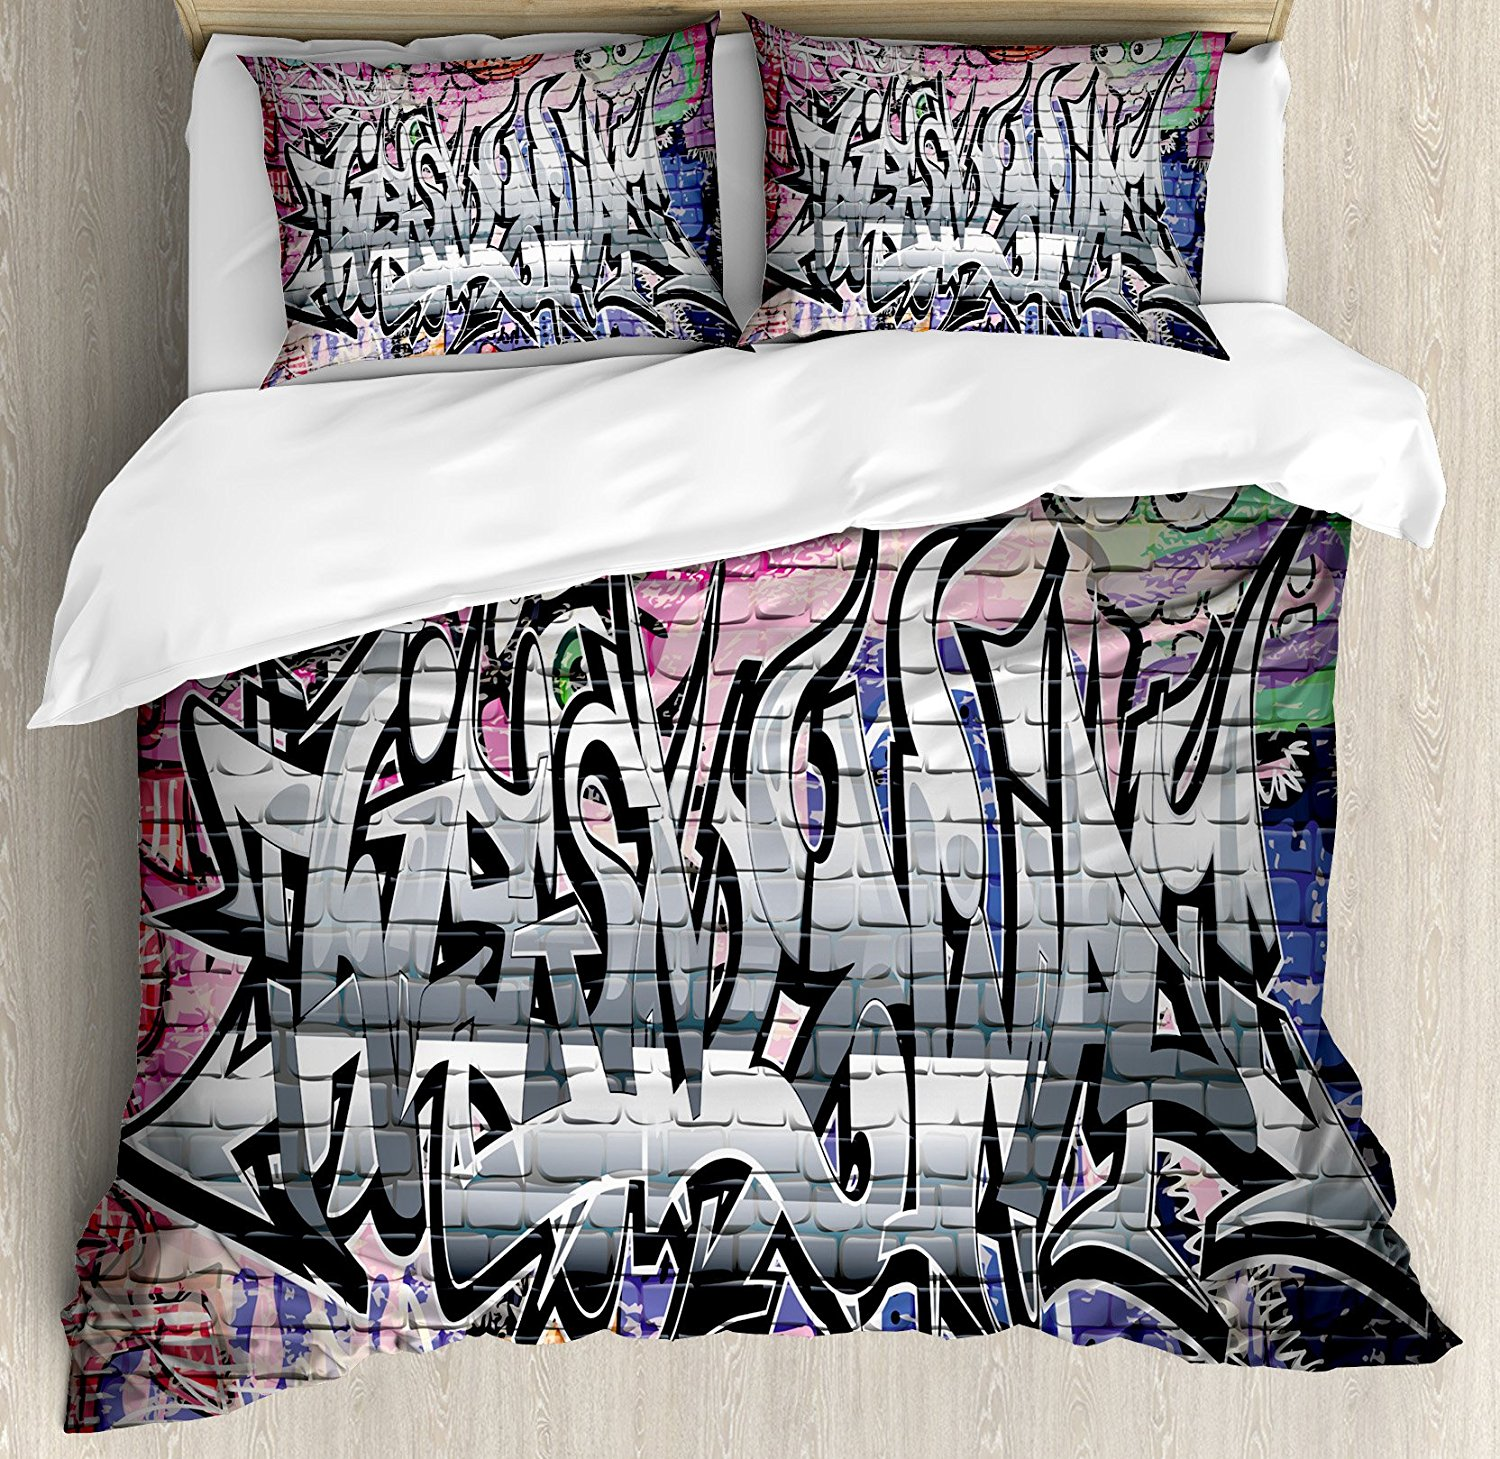 Rustic Home Decor Duvet Cover Set Graffiti Grunge Art Wall Several Creepy Underground City Landscape Print 4 Piece Bedding In Sets From